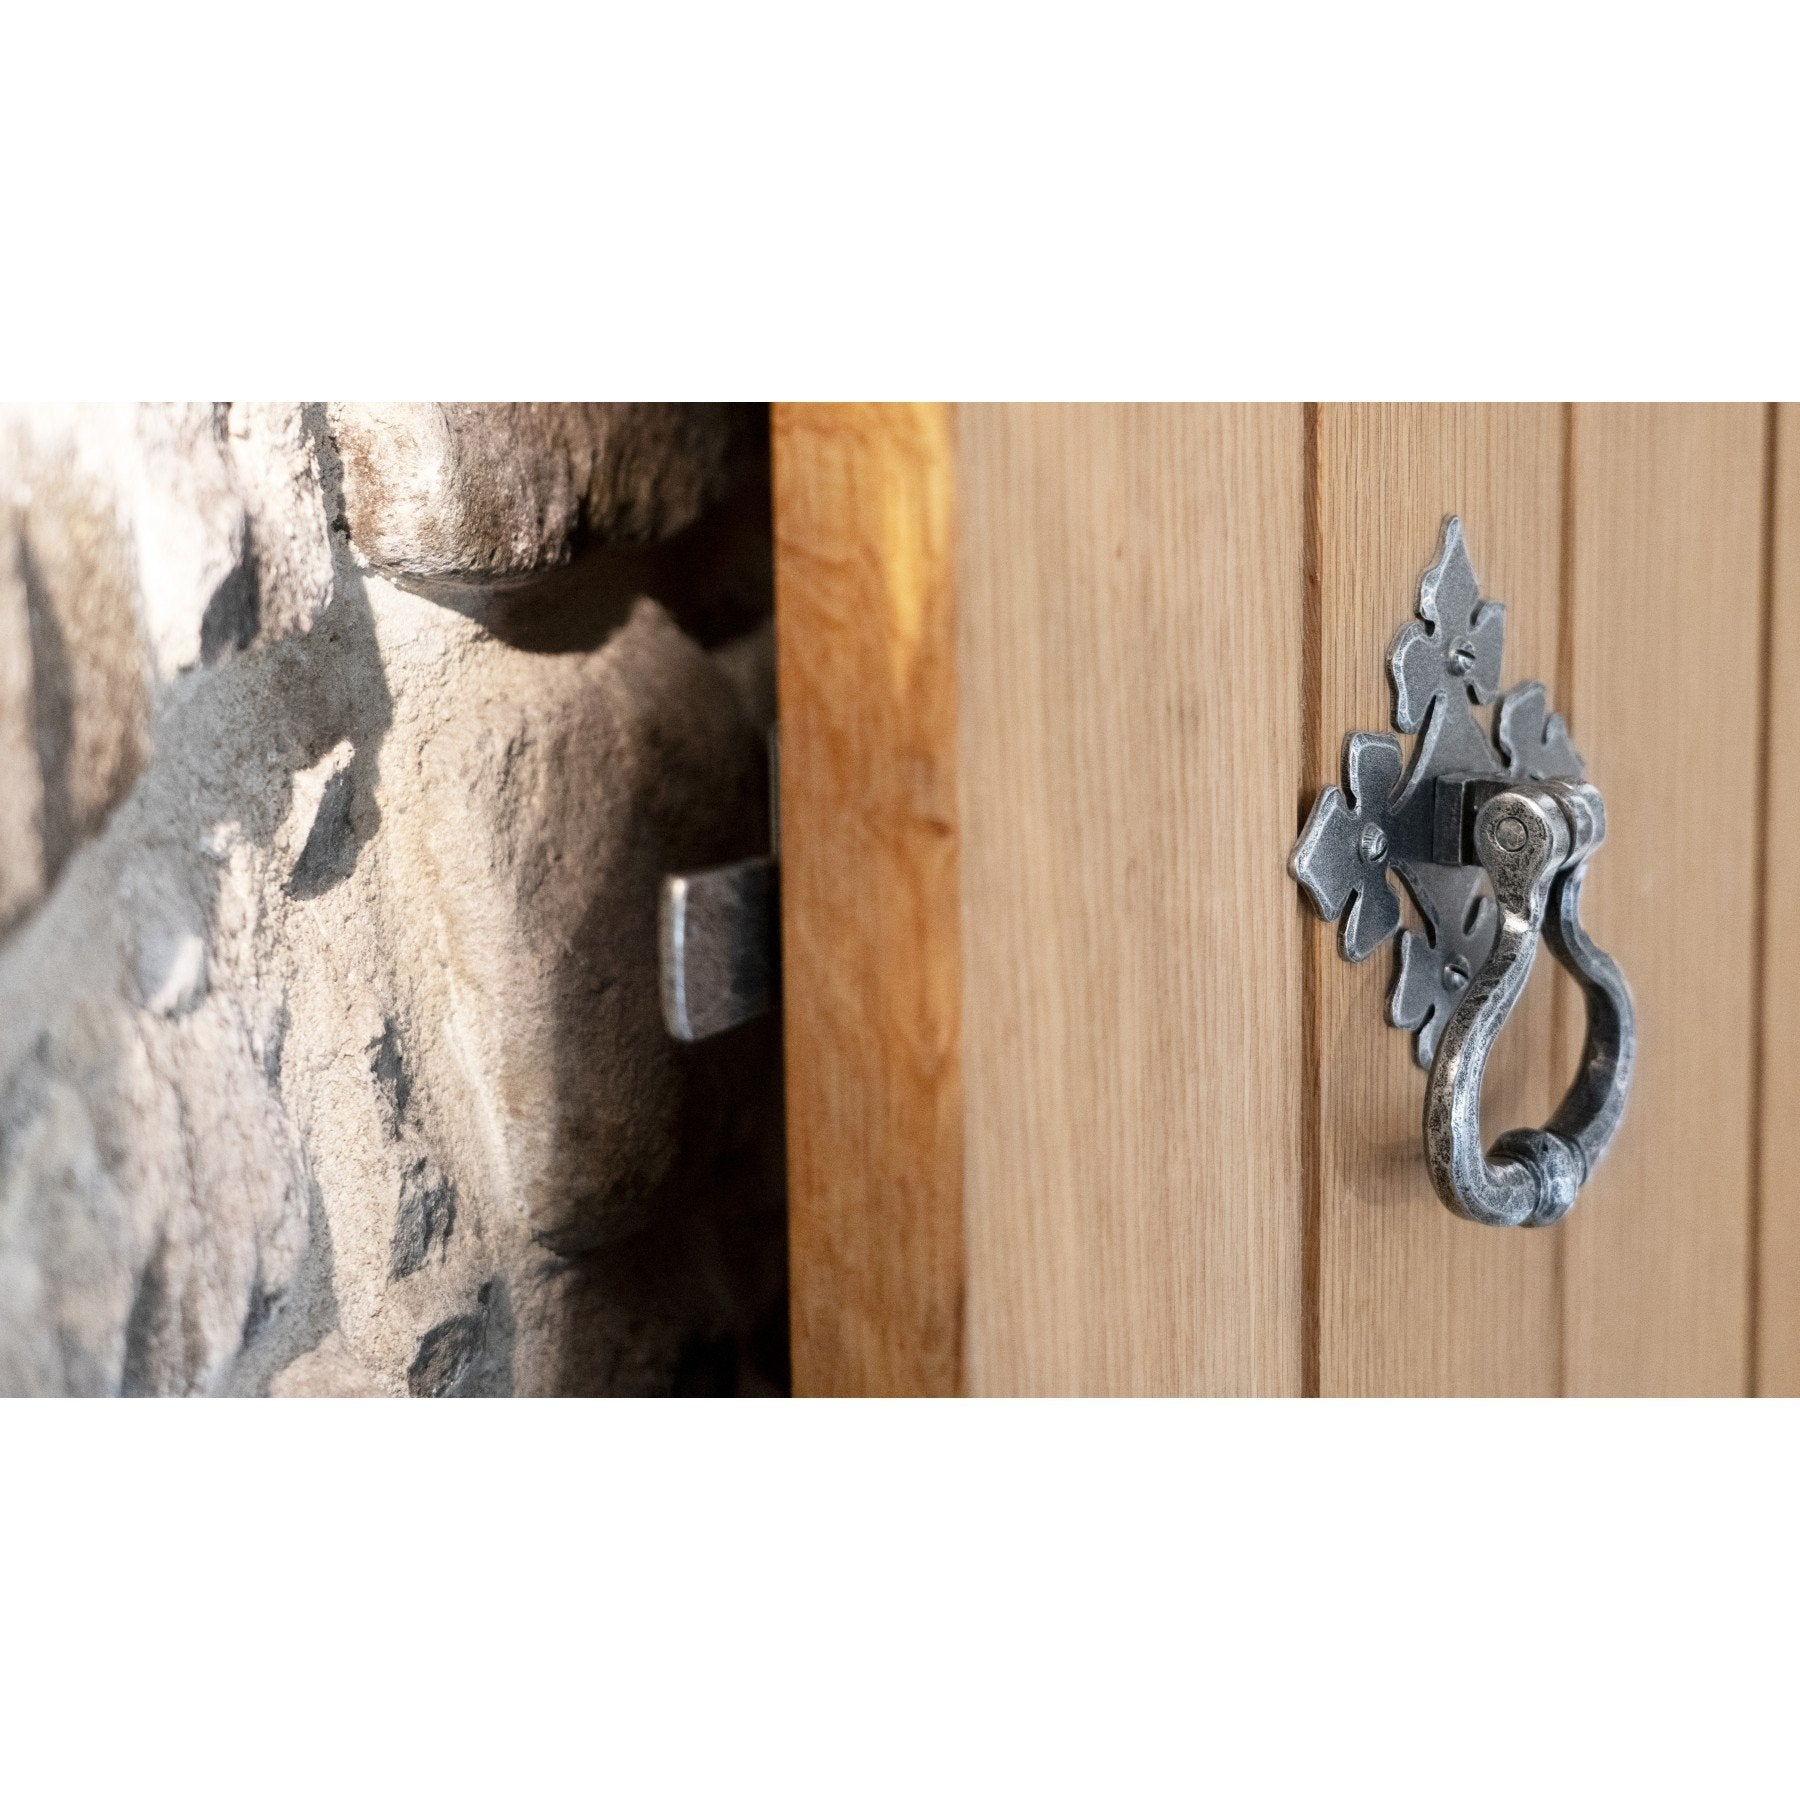 Pewter Shakespeare Latch Set - No.42 Interiors